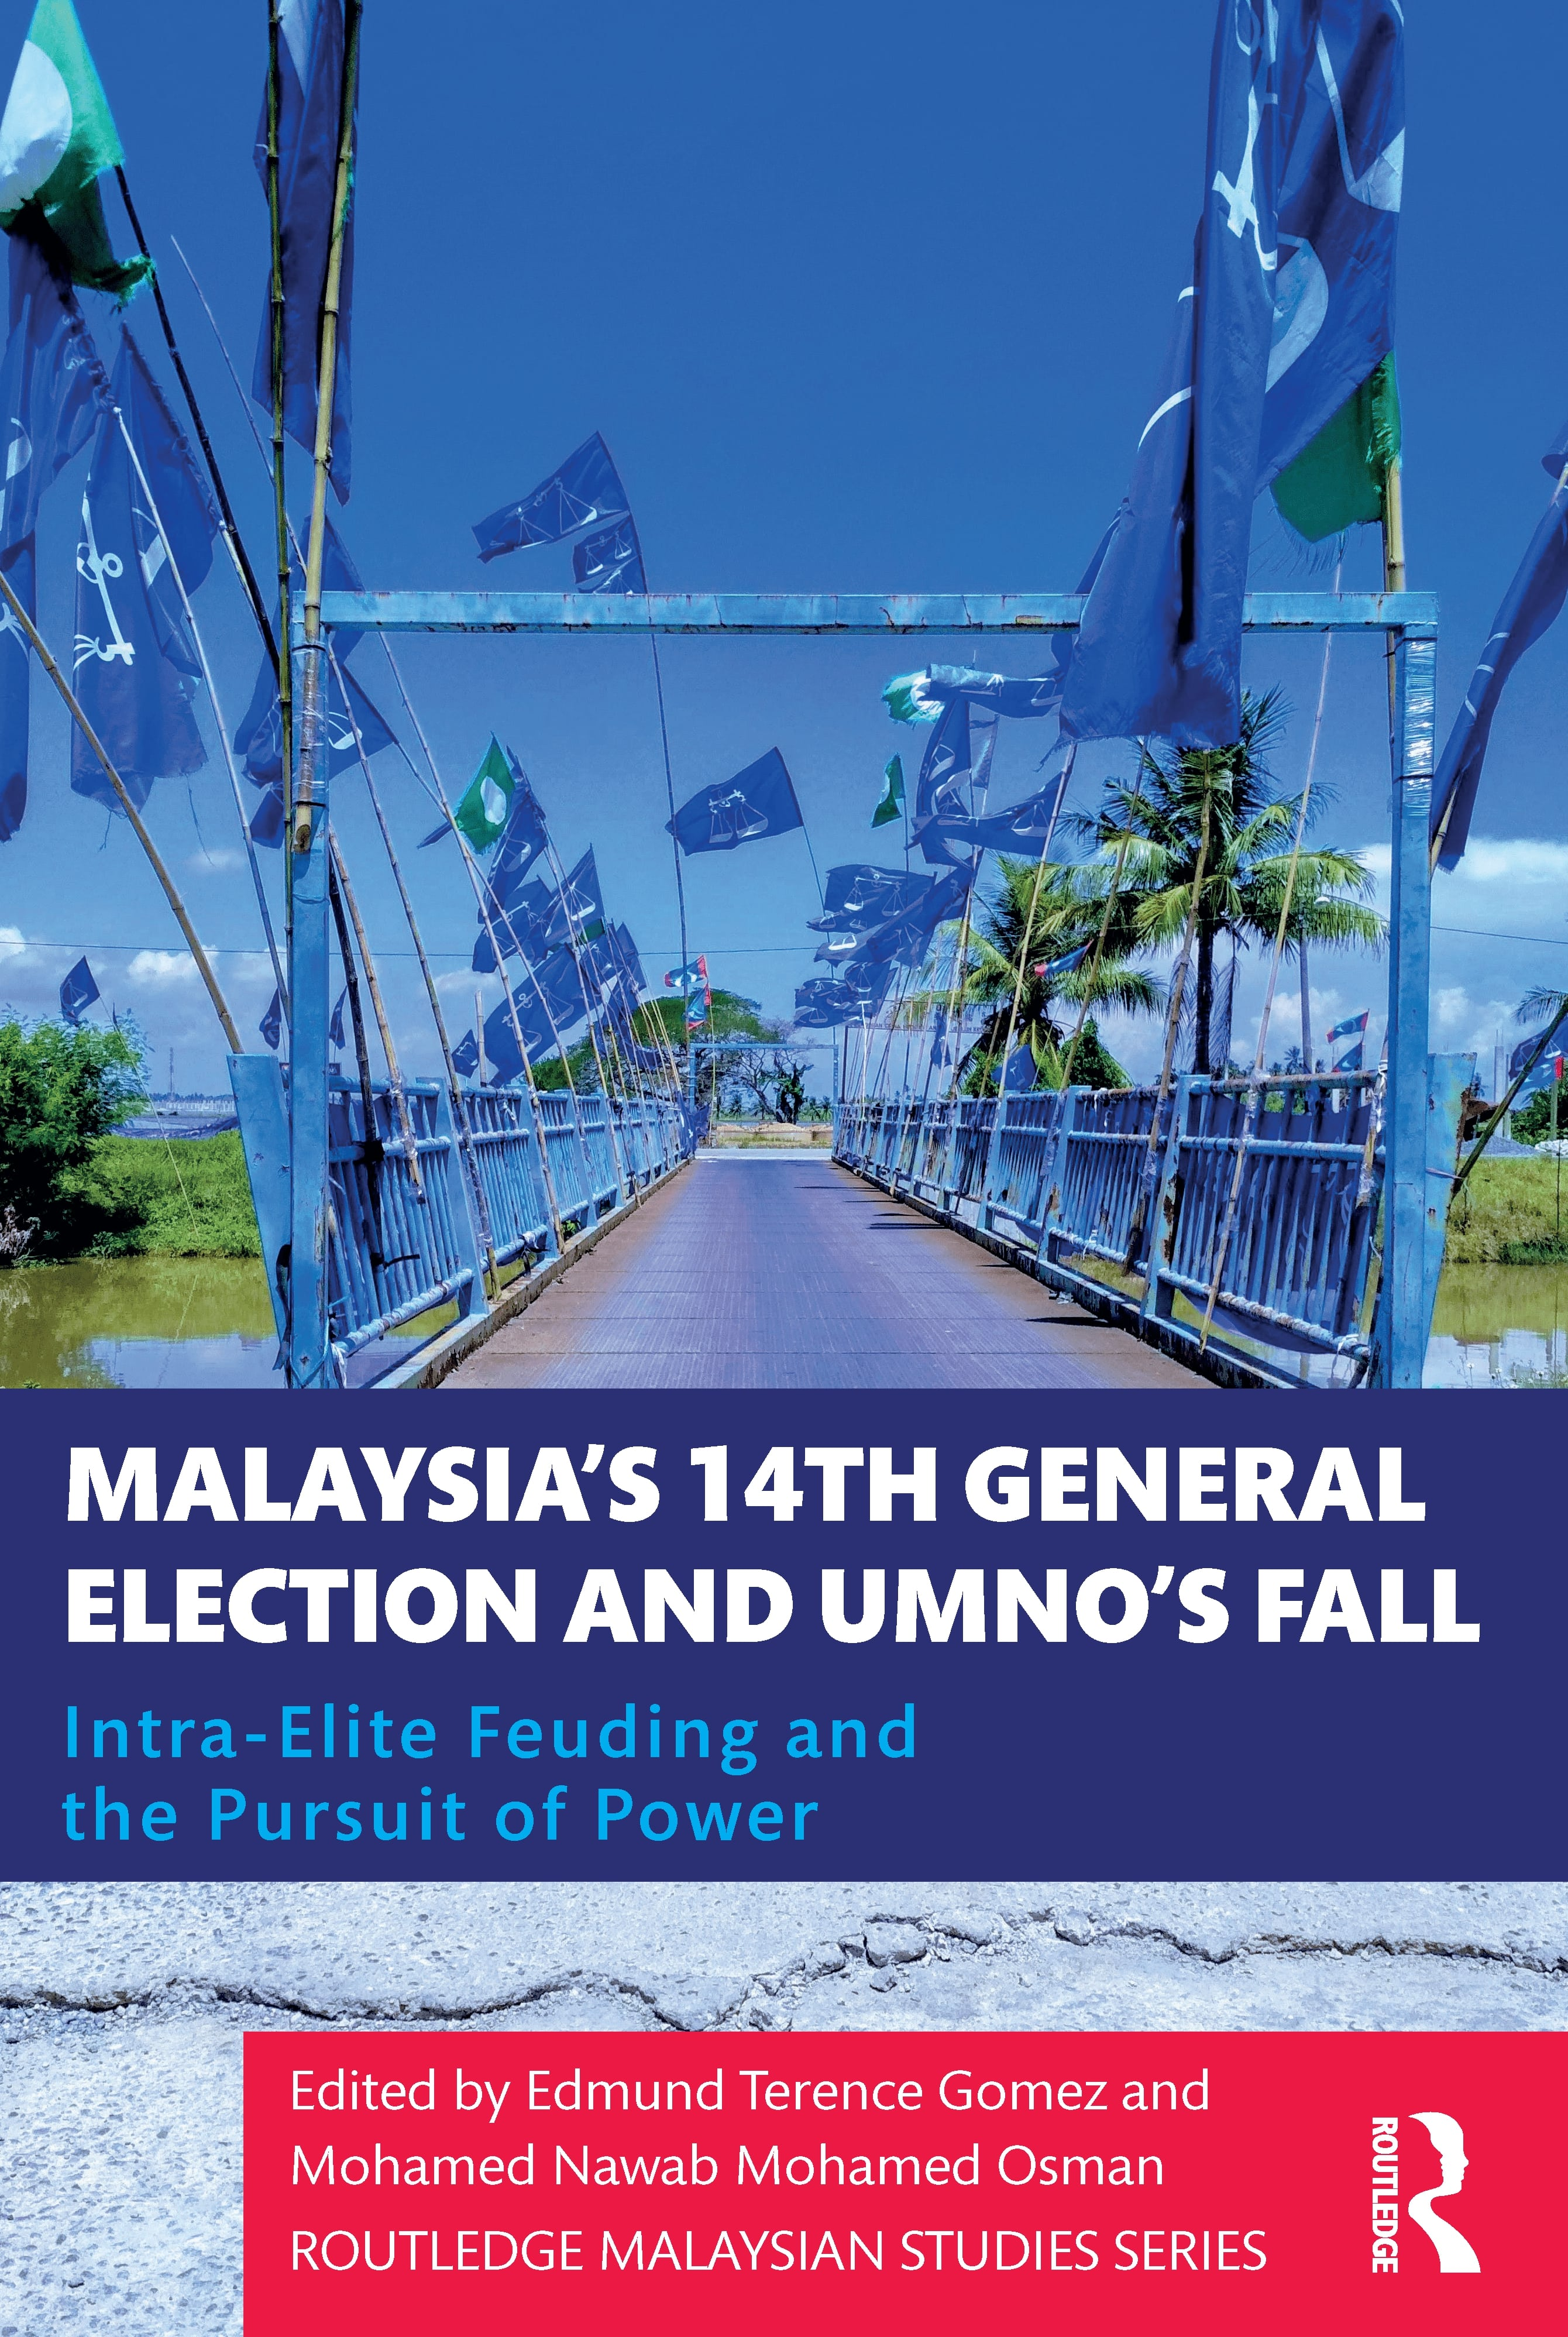 Malaysia's 14th General Election and UMNO's Fall: Intra-Elite Feuding in the Pursuit of Power